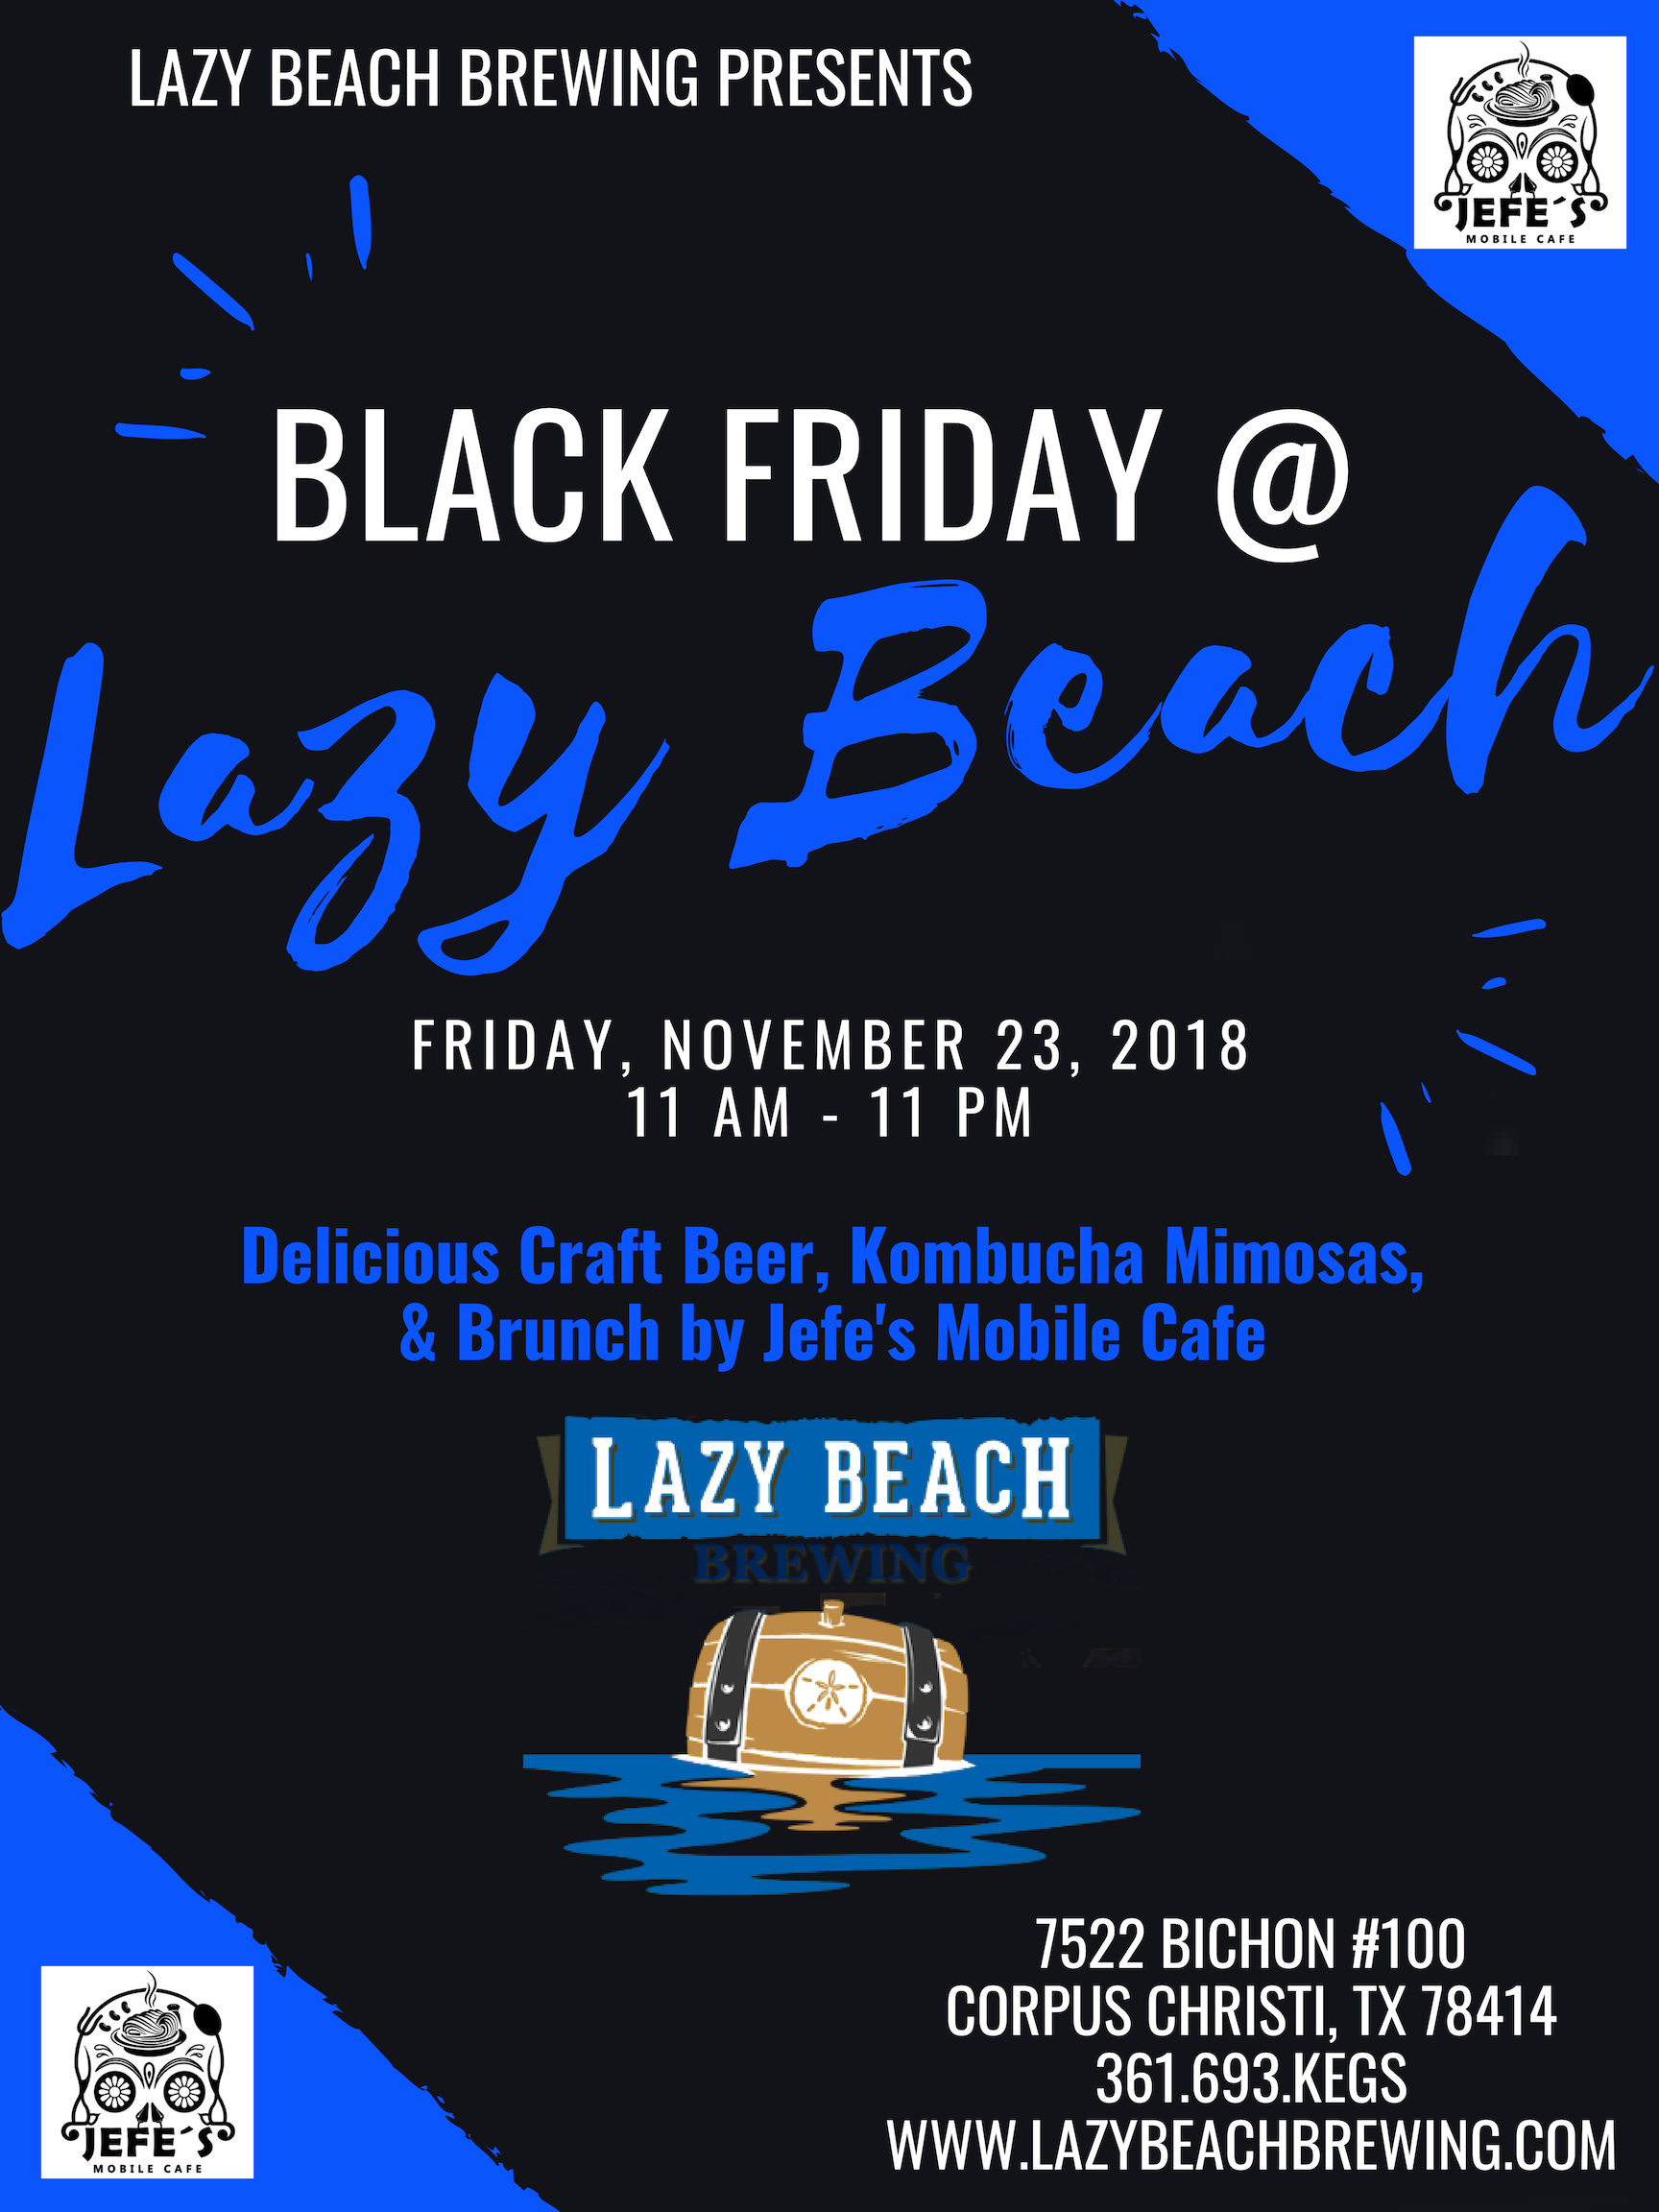 Black Friday at Lazy Beach